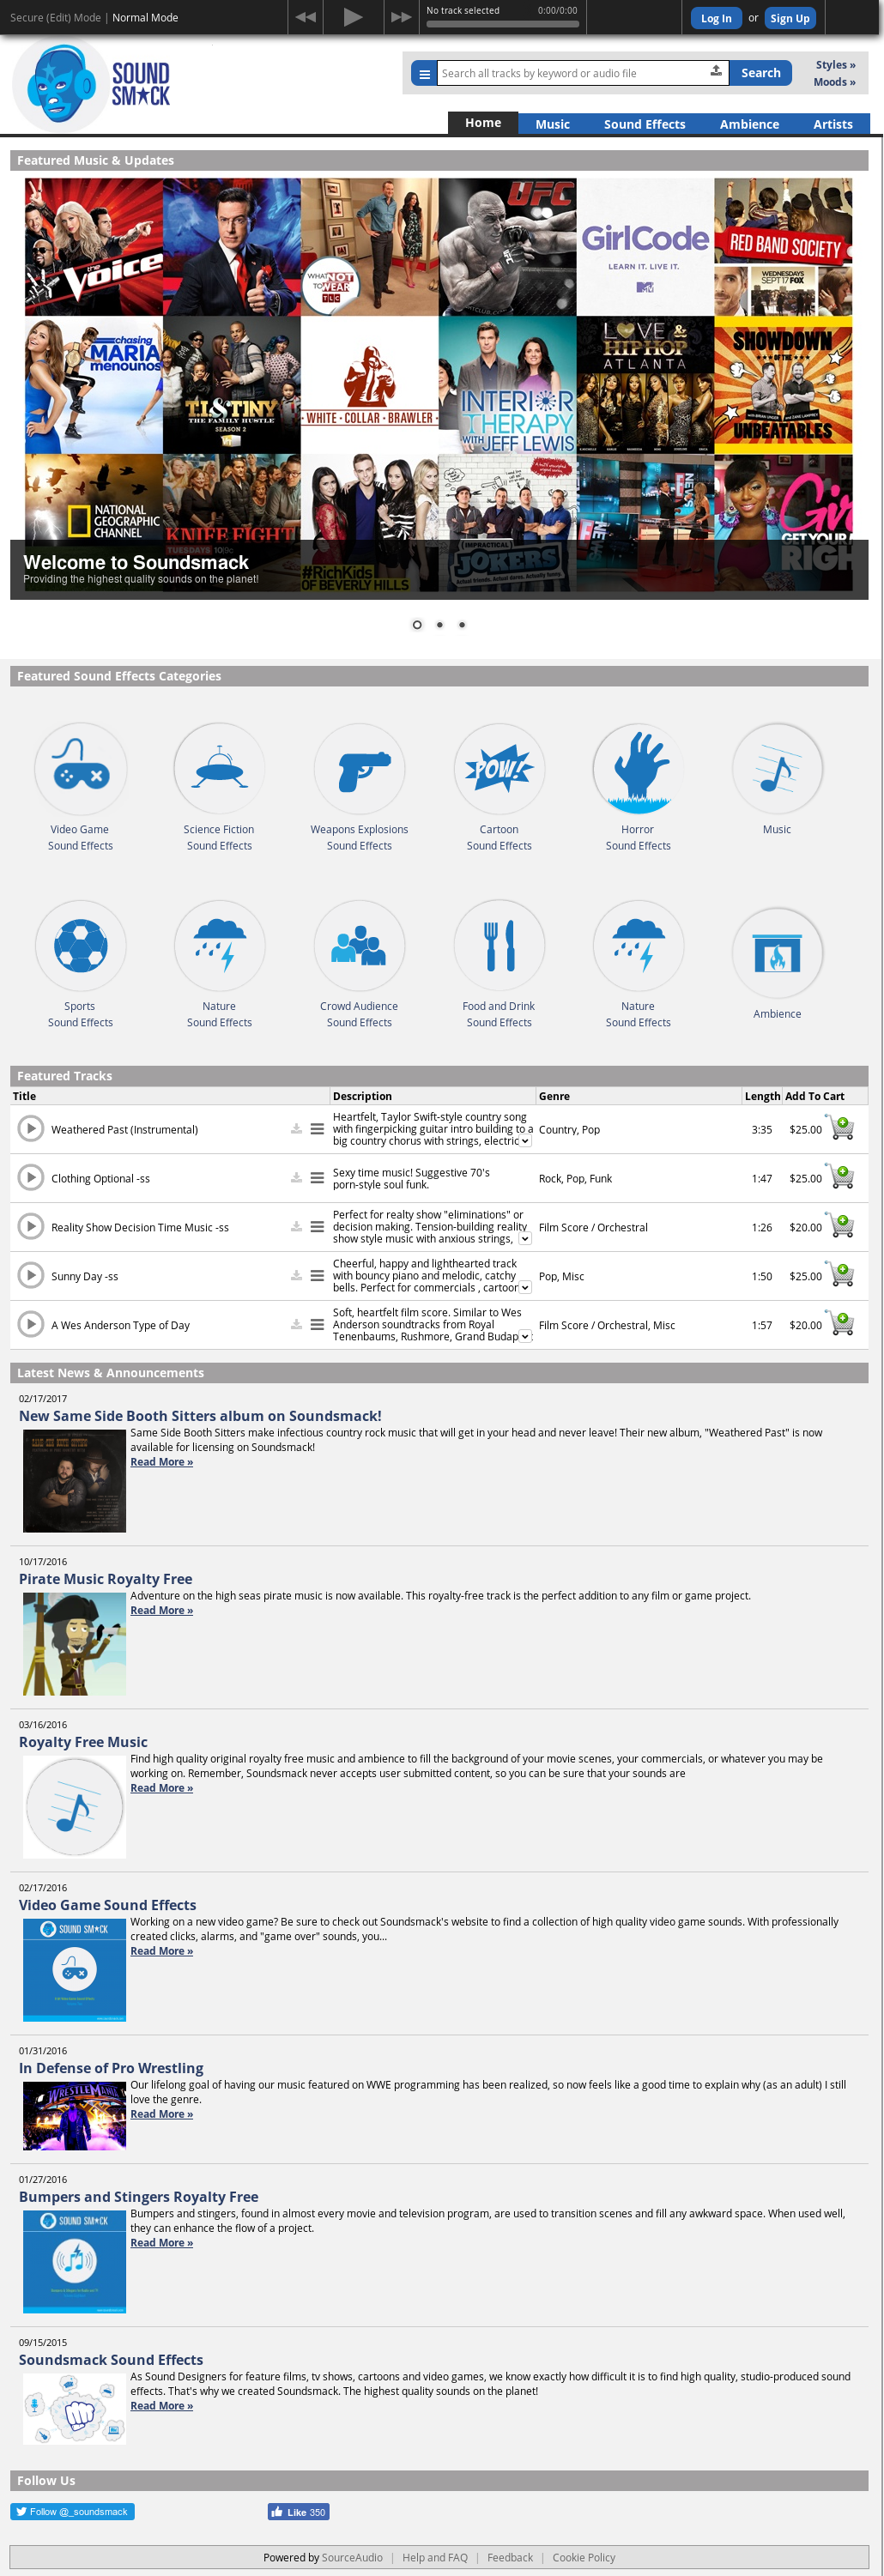 Soundsmack Competitors, Revenue and Employees - Owler Company Profile